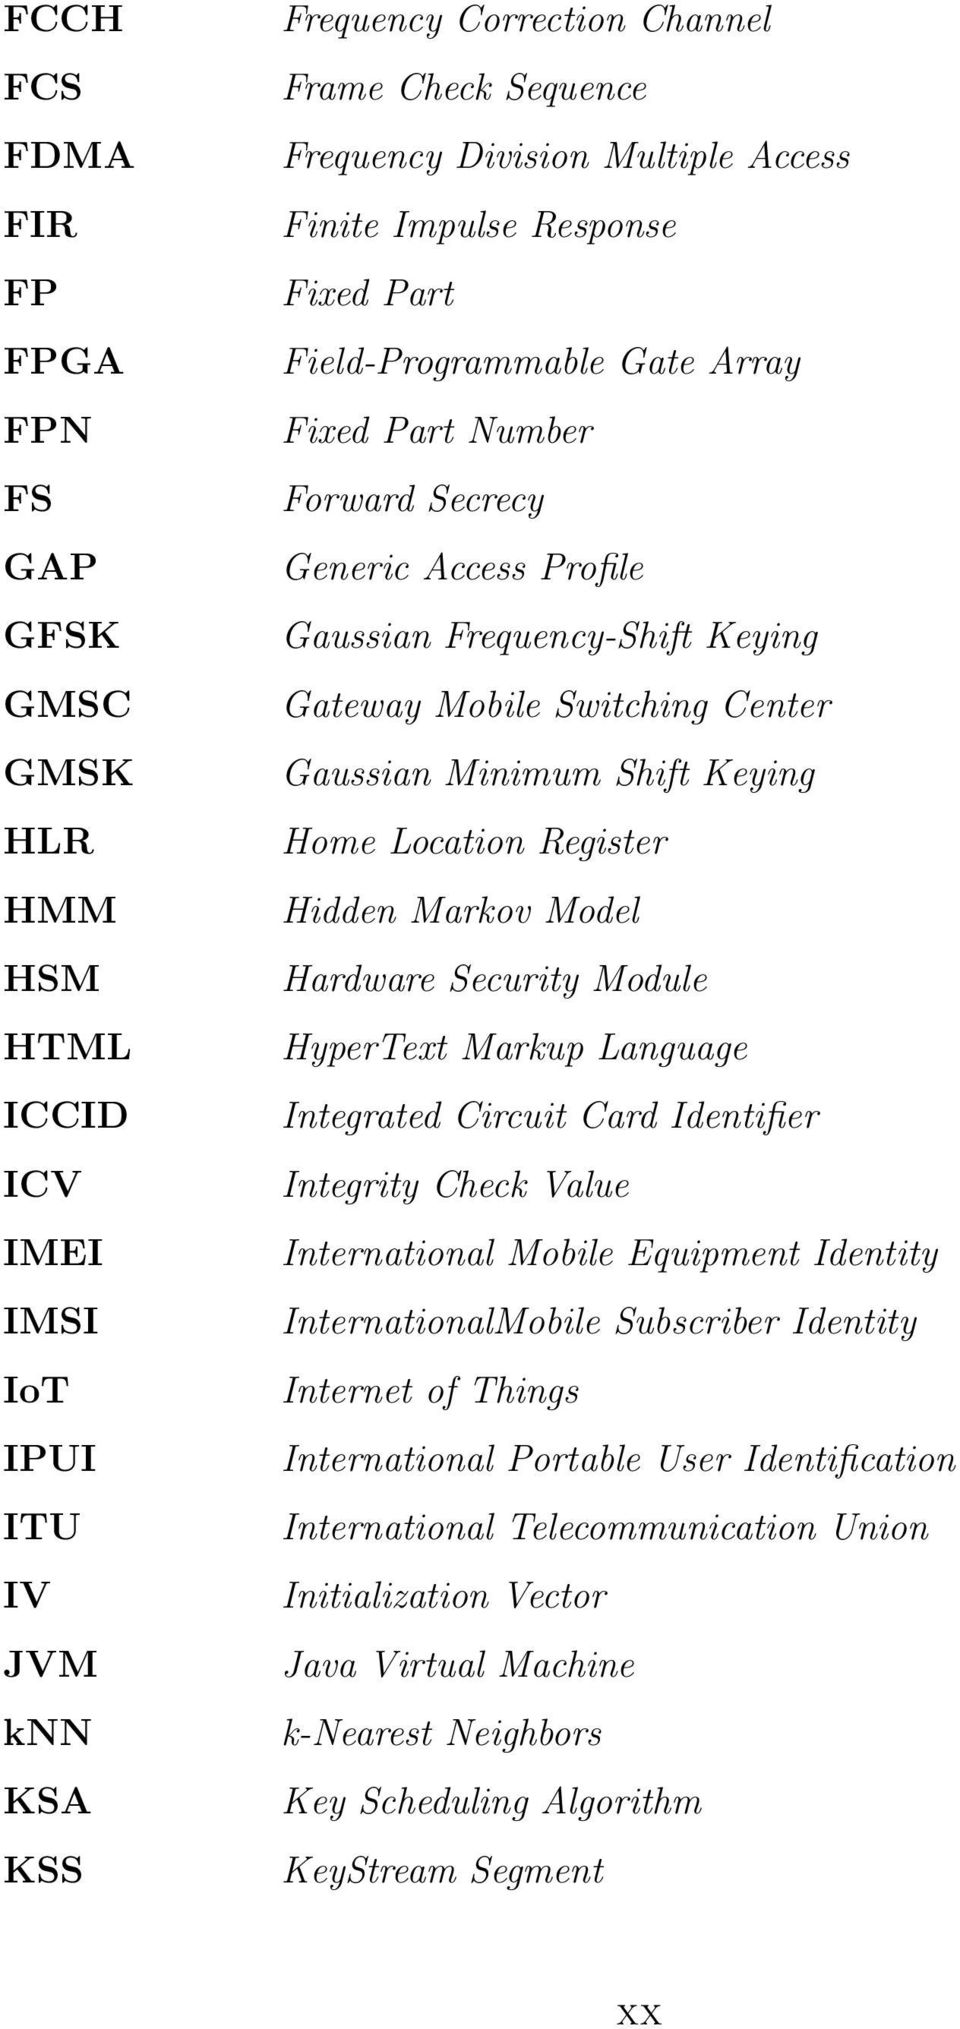 Gaussian Minimum Shift Keying Home Location Register Hidden Markov Model Hardware Security Module HyperText Markup Language Integrated Circuit Card Identifier Integrity Check Value International